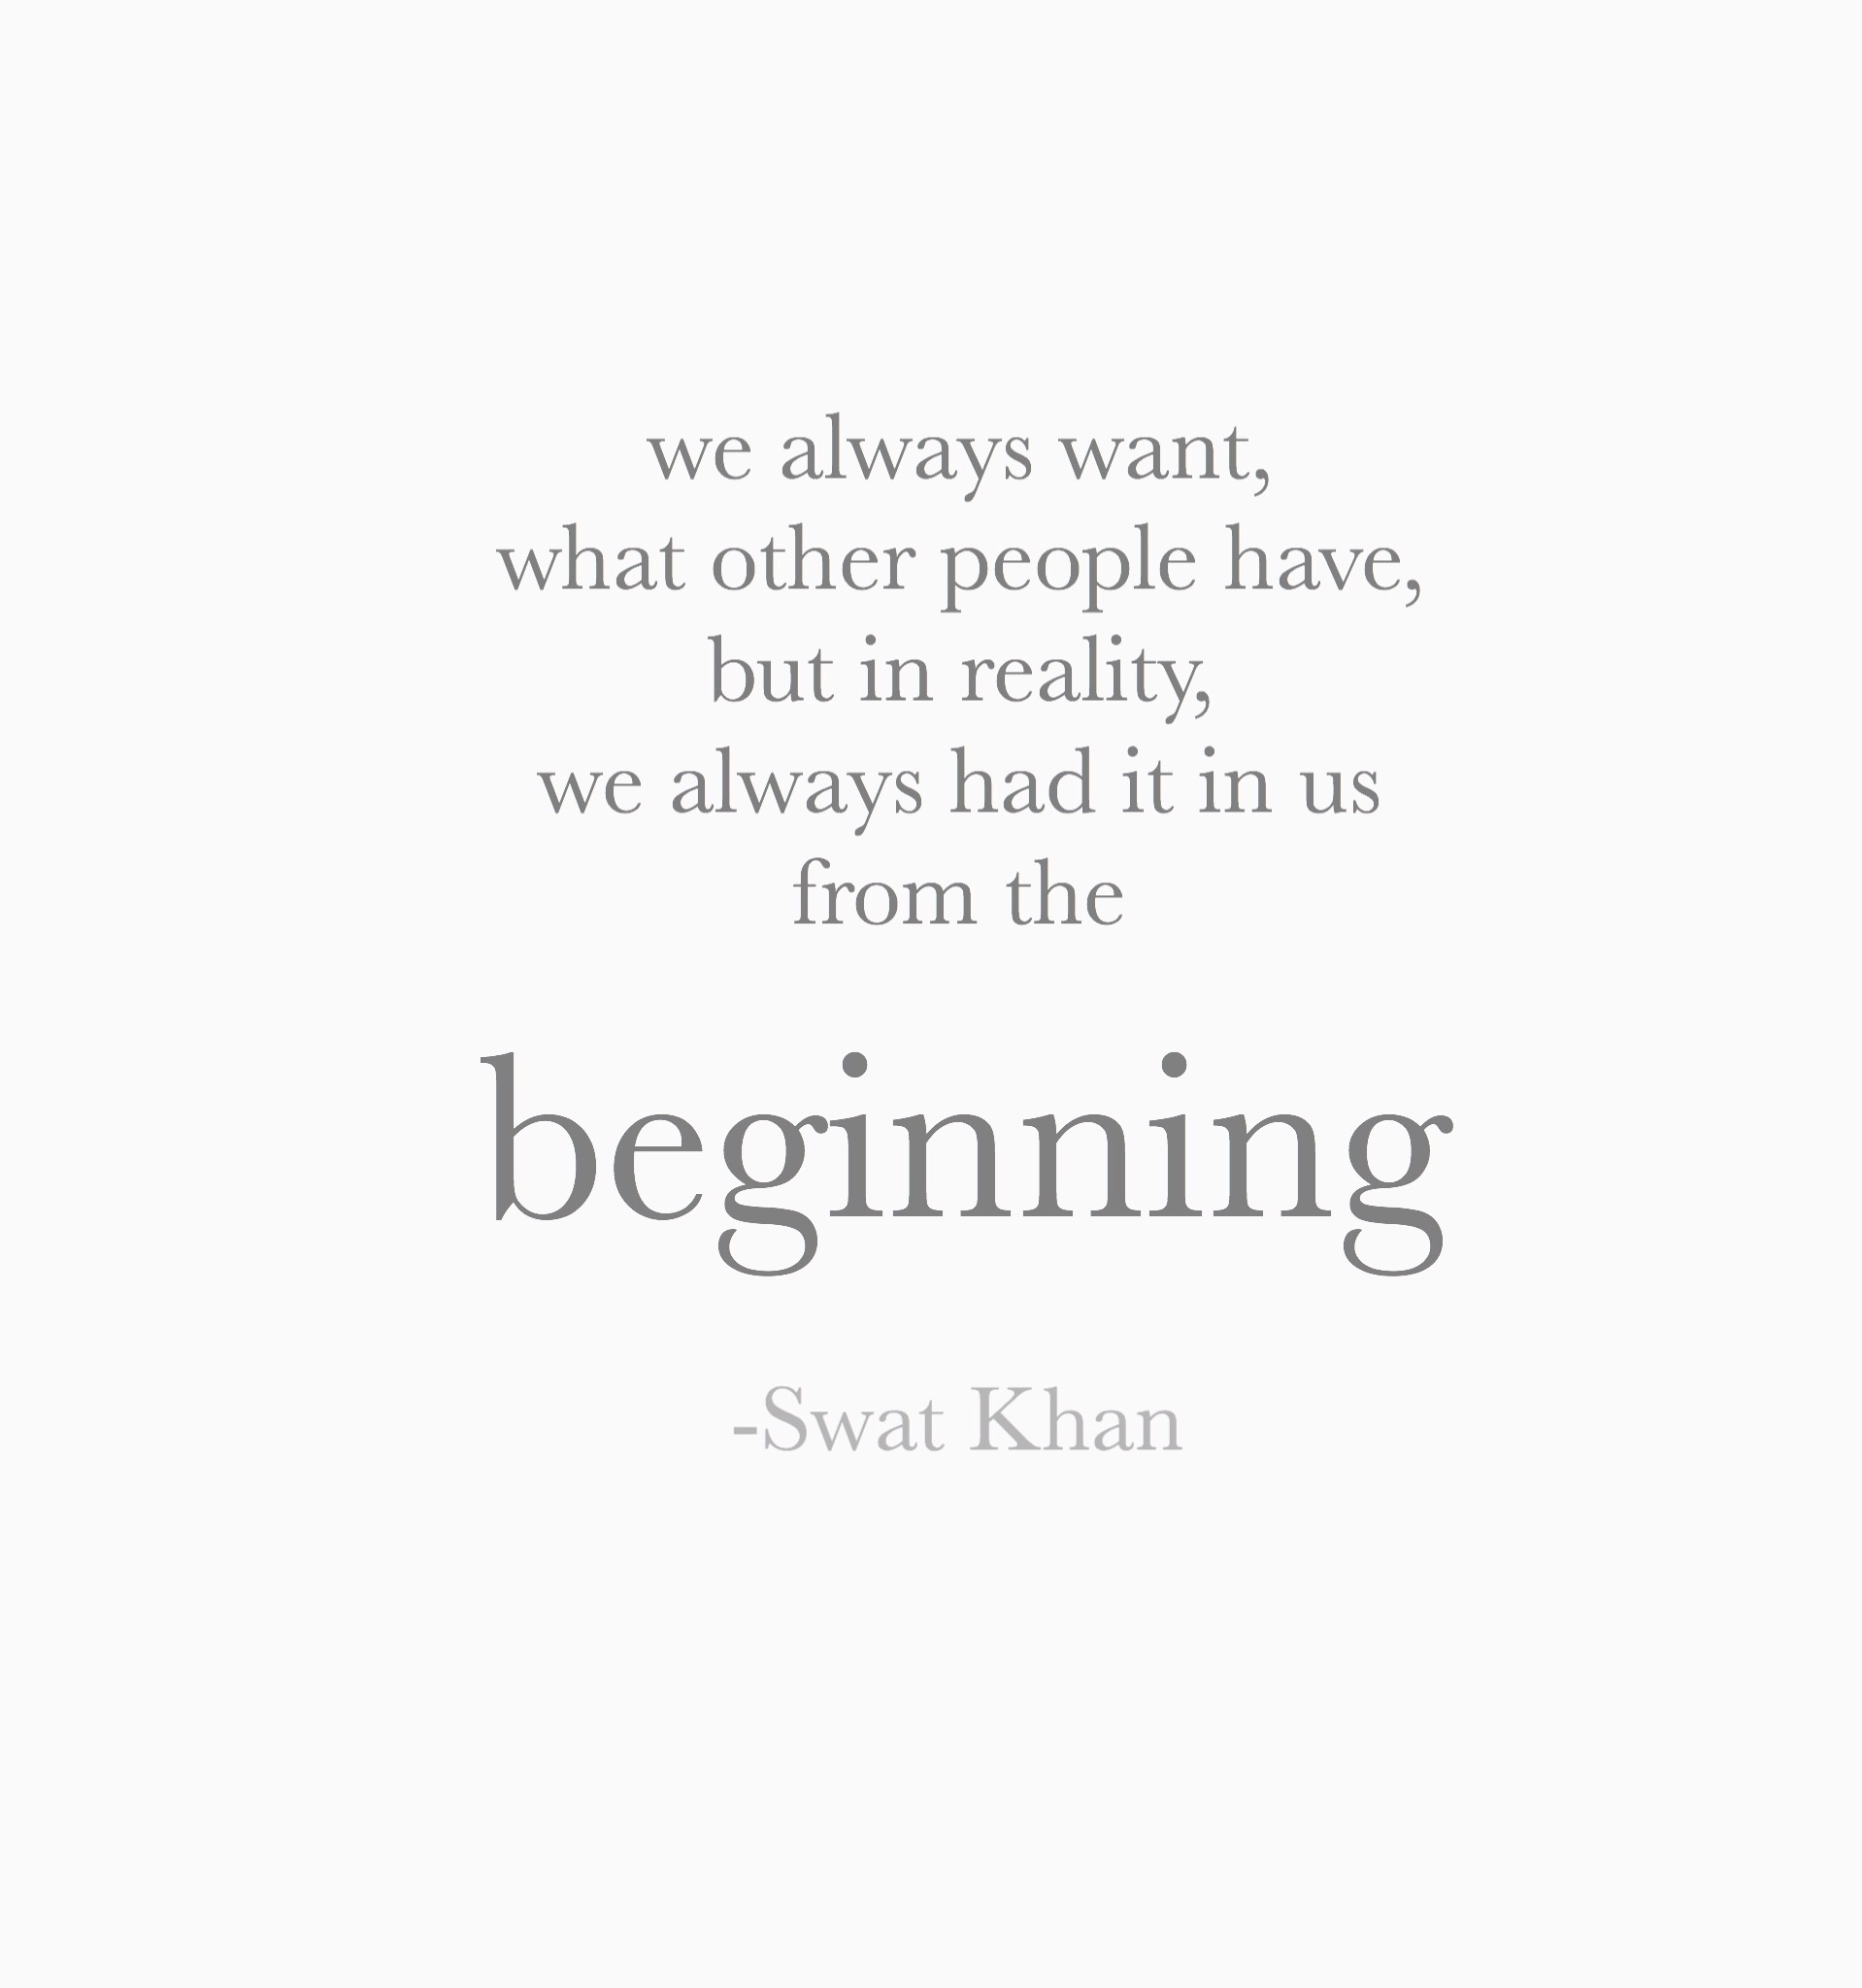 We always want, what other people have, but in reality, we always had it in us, from the beginning.